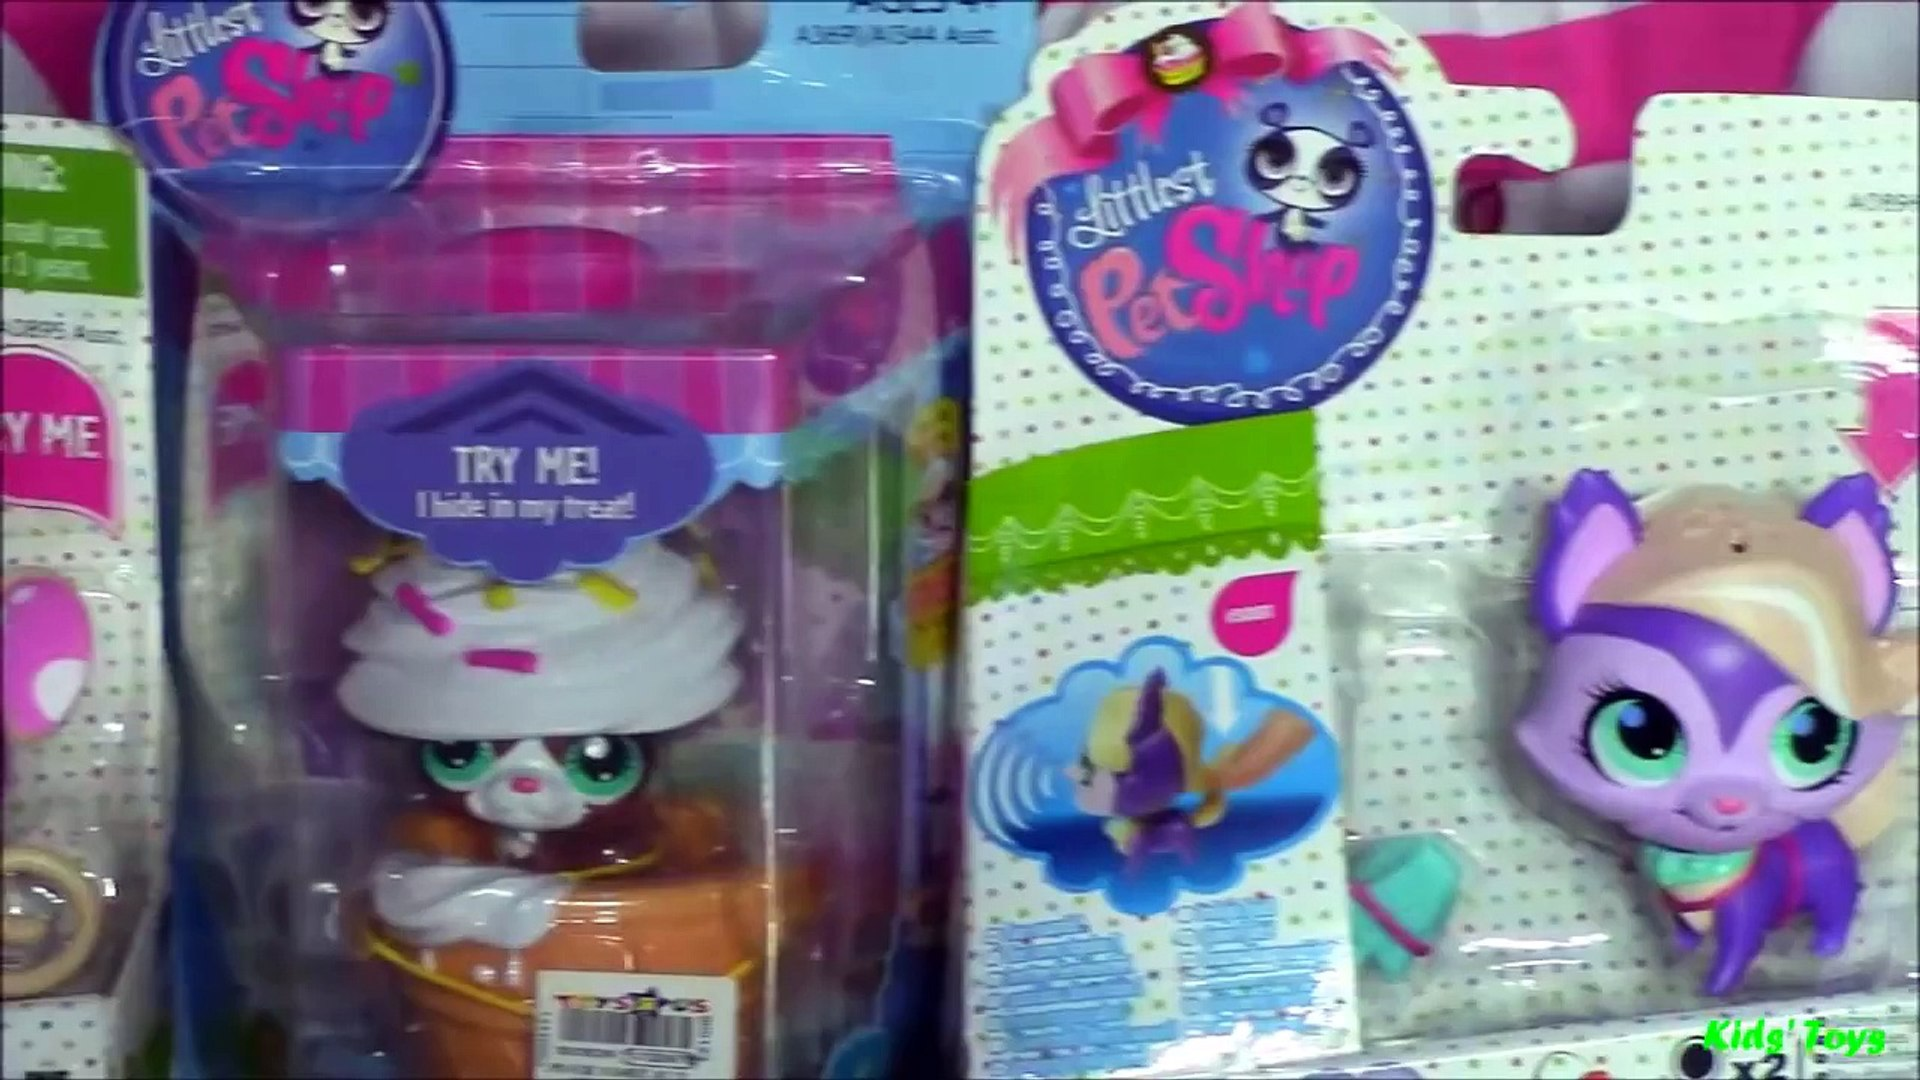 LPS: 3 Sweet Snackin Pets Littlest Pet Shop and 1 Hide and Sweet Littlest Pet Shop